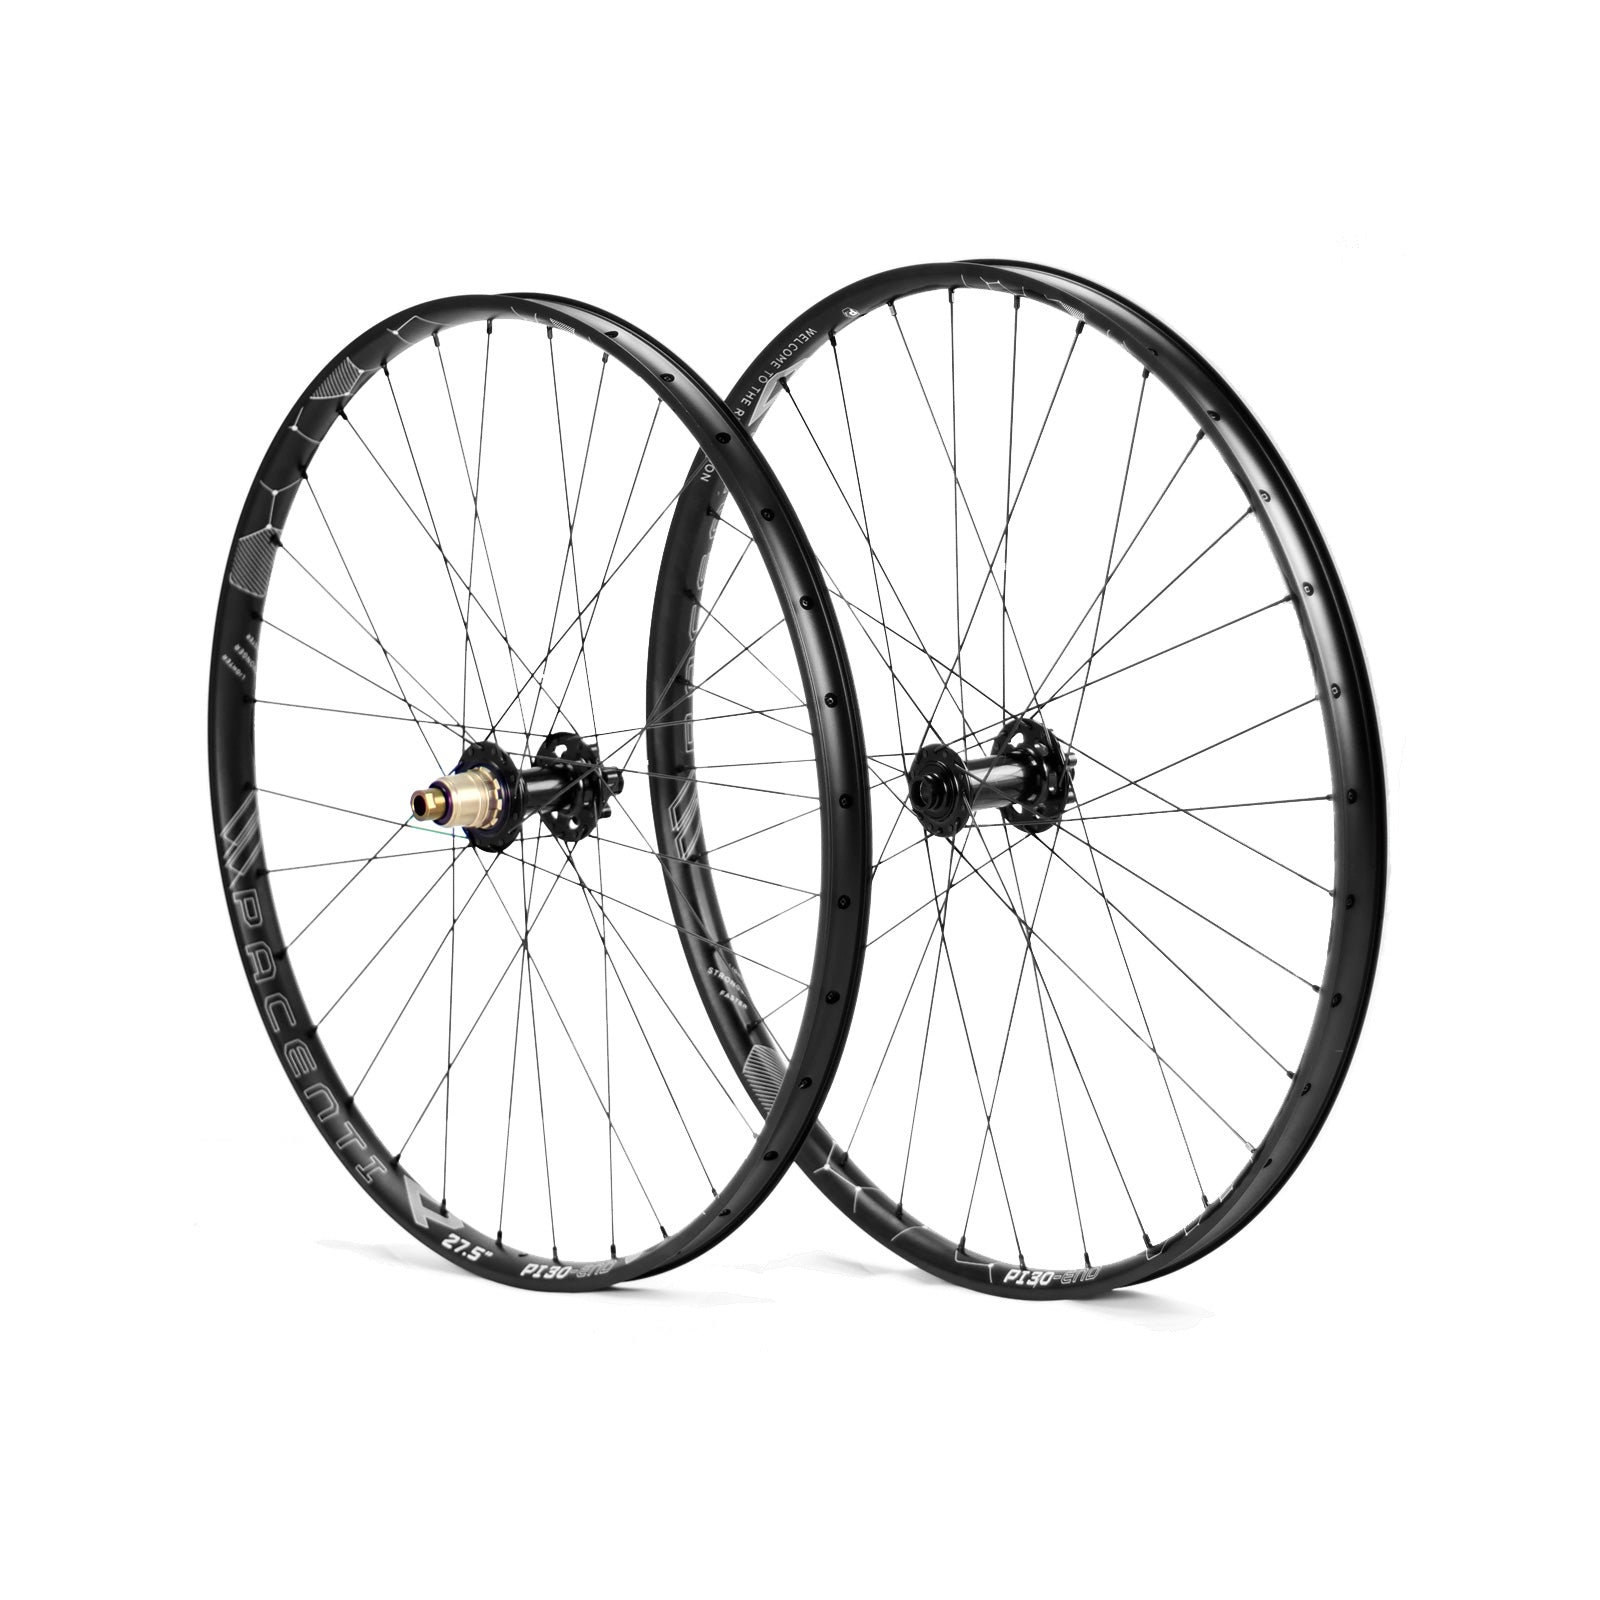 "PI30-END Wheelset 27.5"" Boost 6bolt"